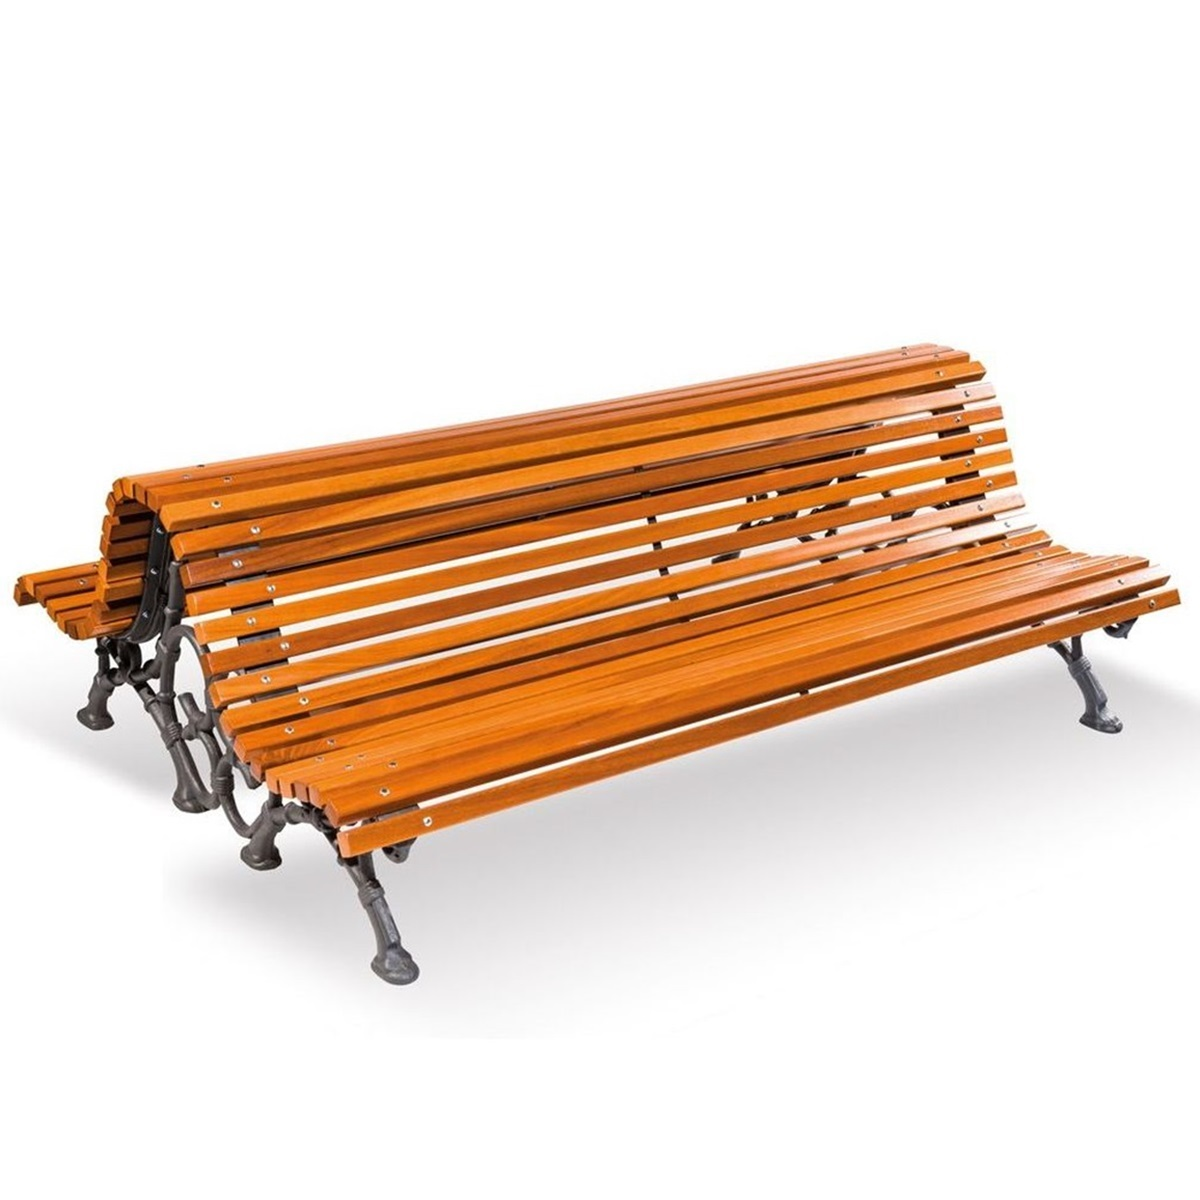 Double Romantico bench of wood urban furniture parks and gardens